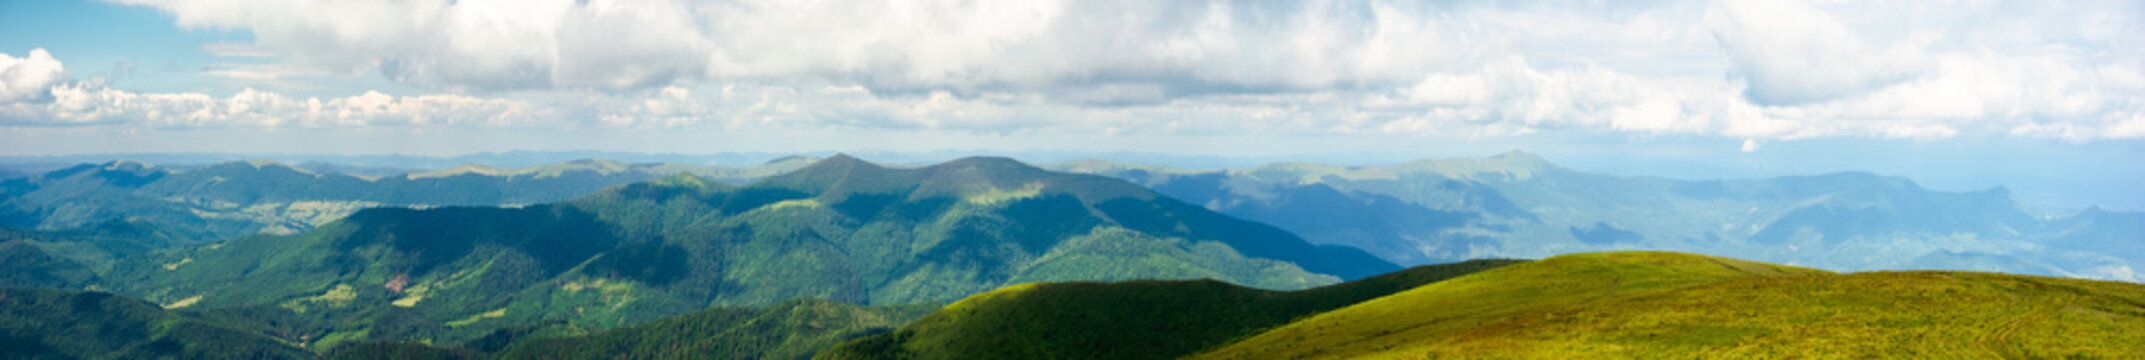 mountain panorama on a summer day. hills rolling from the valley up in to the distance. view of the carpathian watershed ridge beneath a sky with clouds